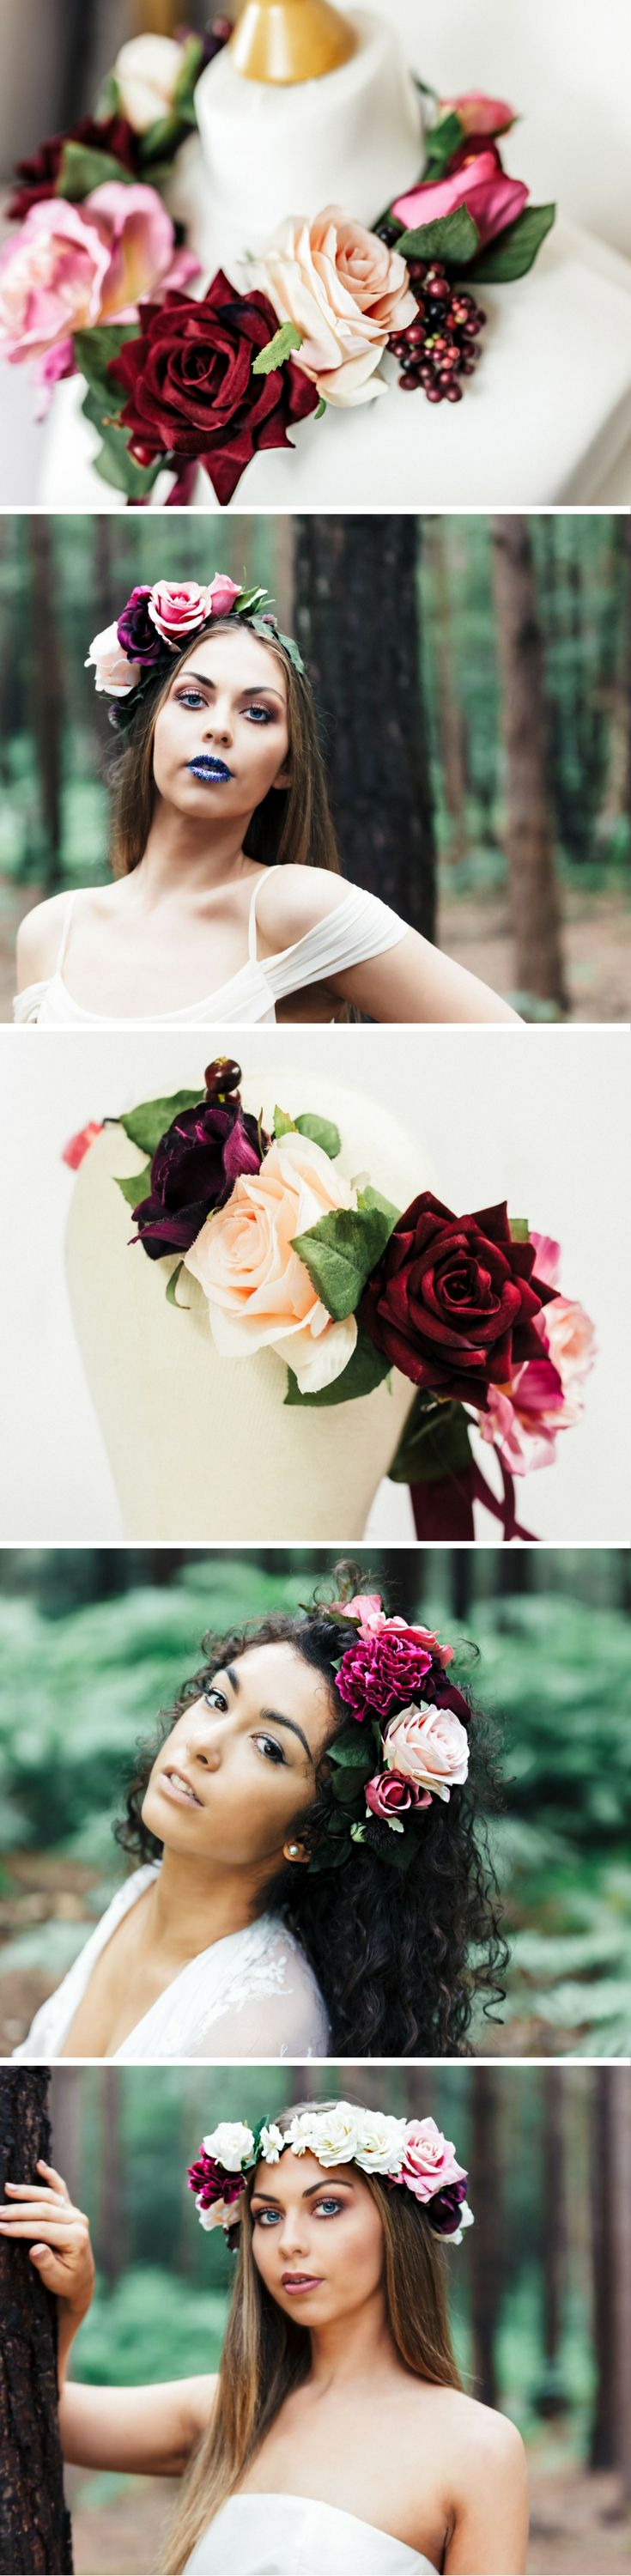 Burgundy rose blush and pink wedding flower crown inspiration warm burgundy rose blush and pink wedding flower crown inspiration warm winter berries and silk faux flowers perfect elopement wedding inspiration izmirmasajfo